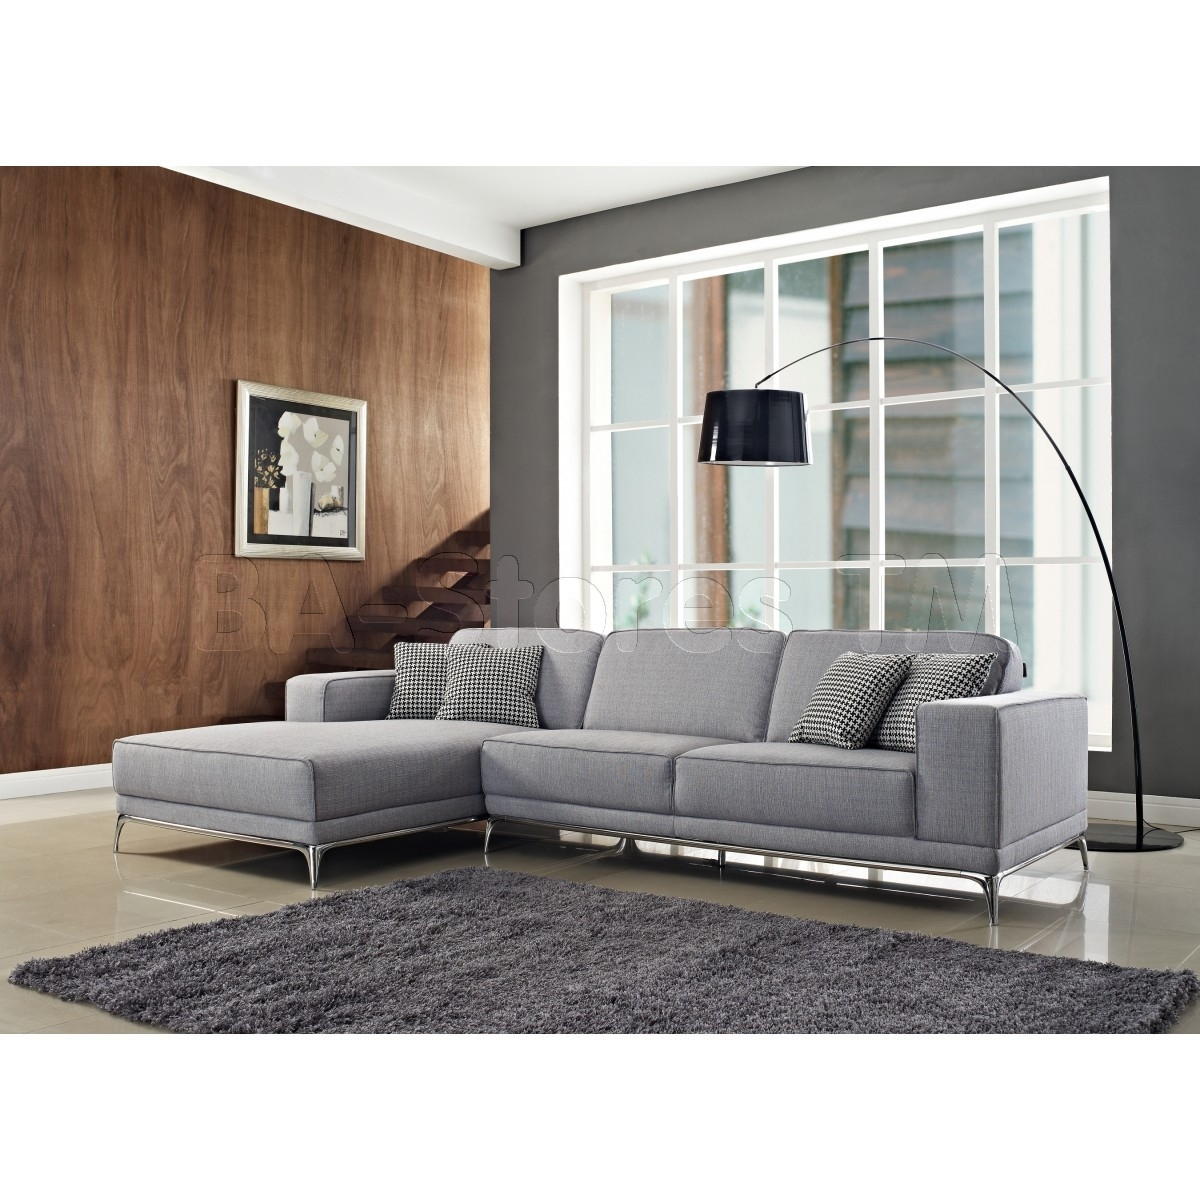 Agata Sectional Sofa | Light Grey – $2, (View 8 of 10)